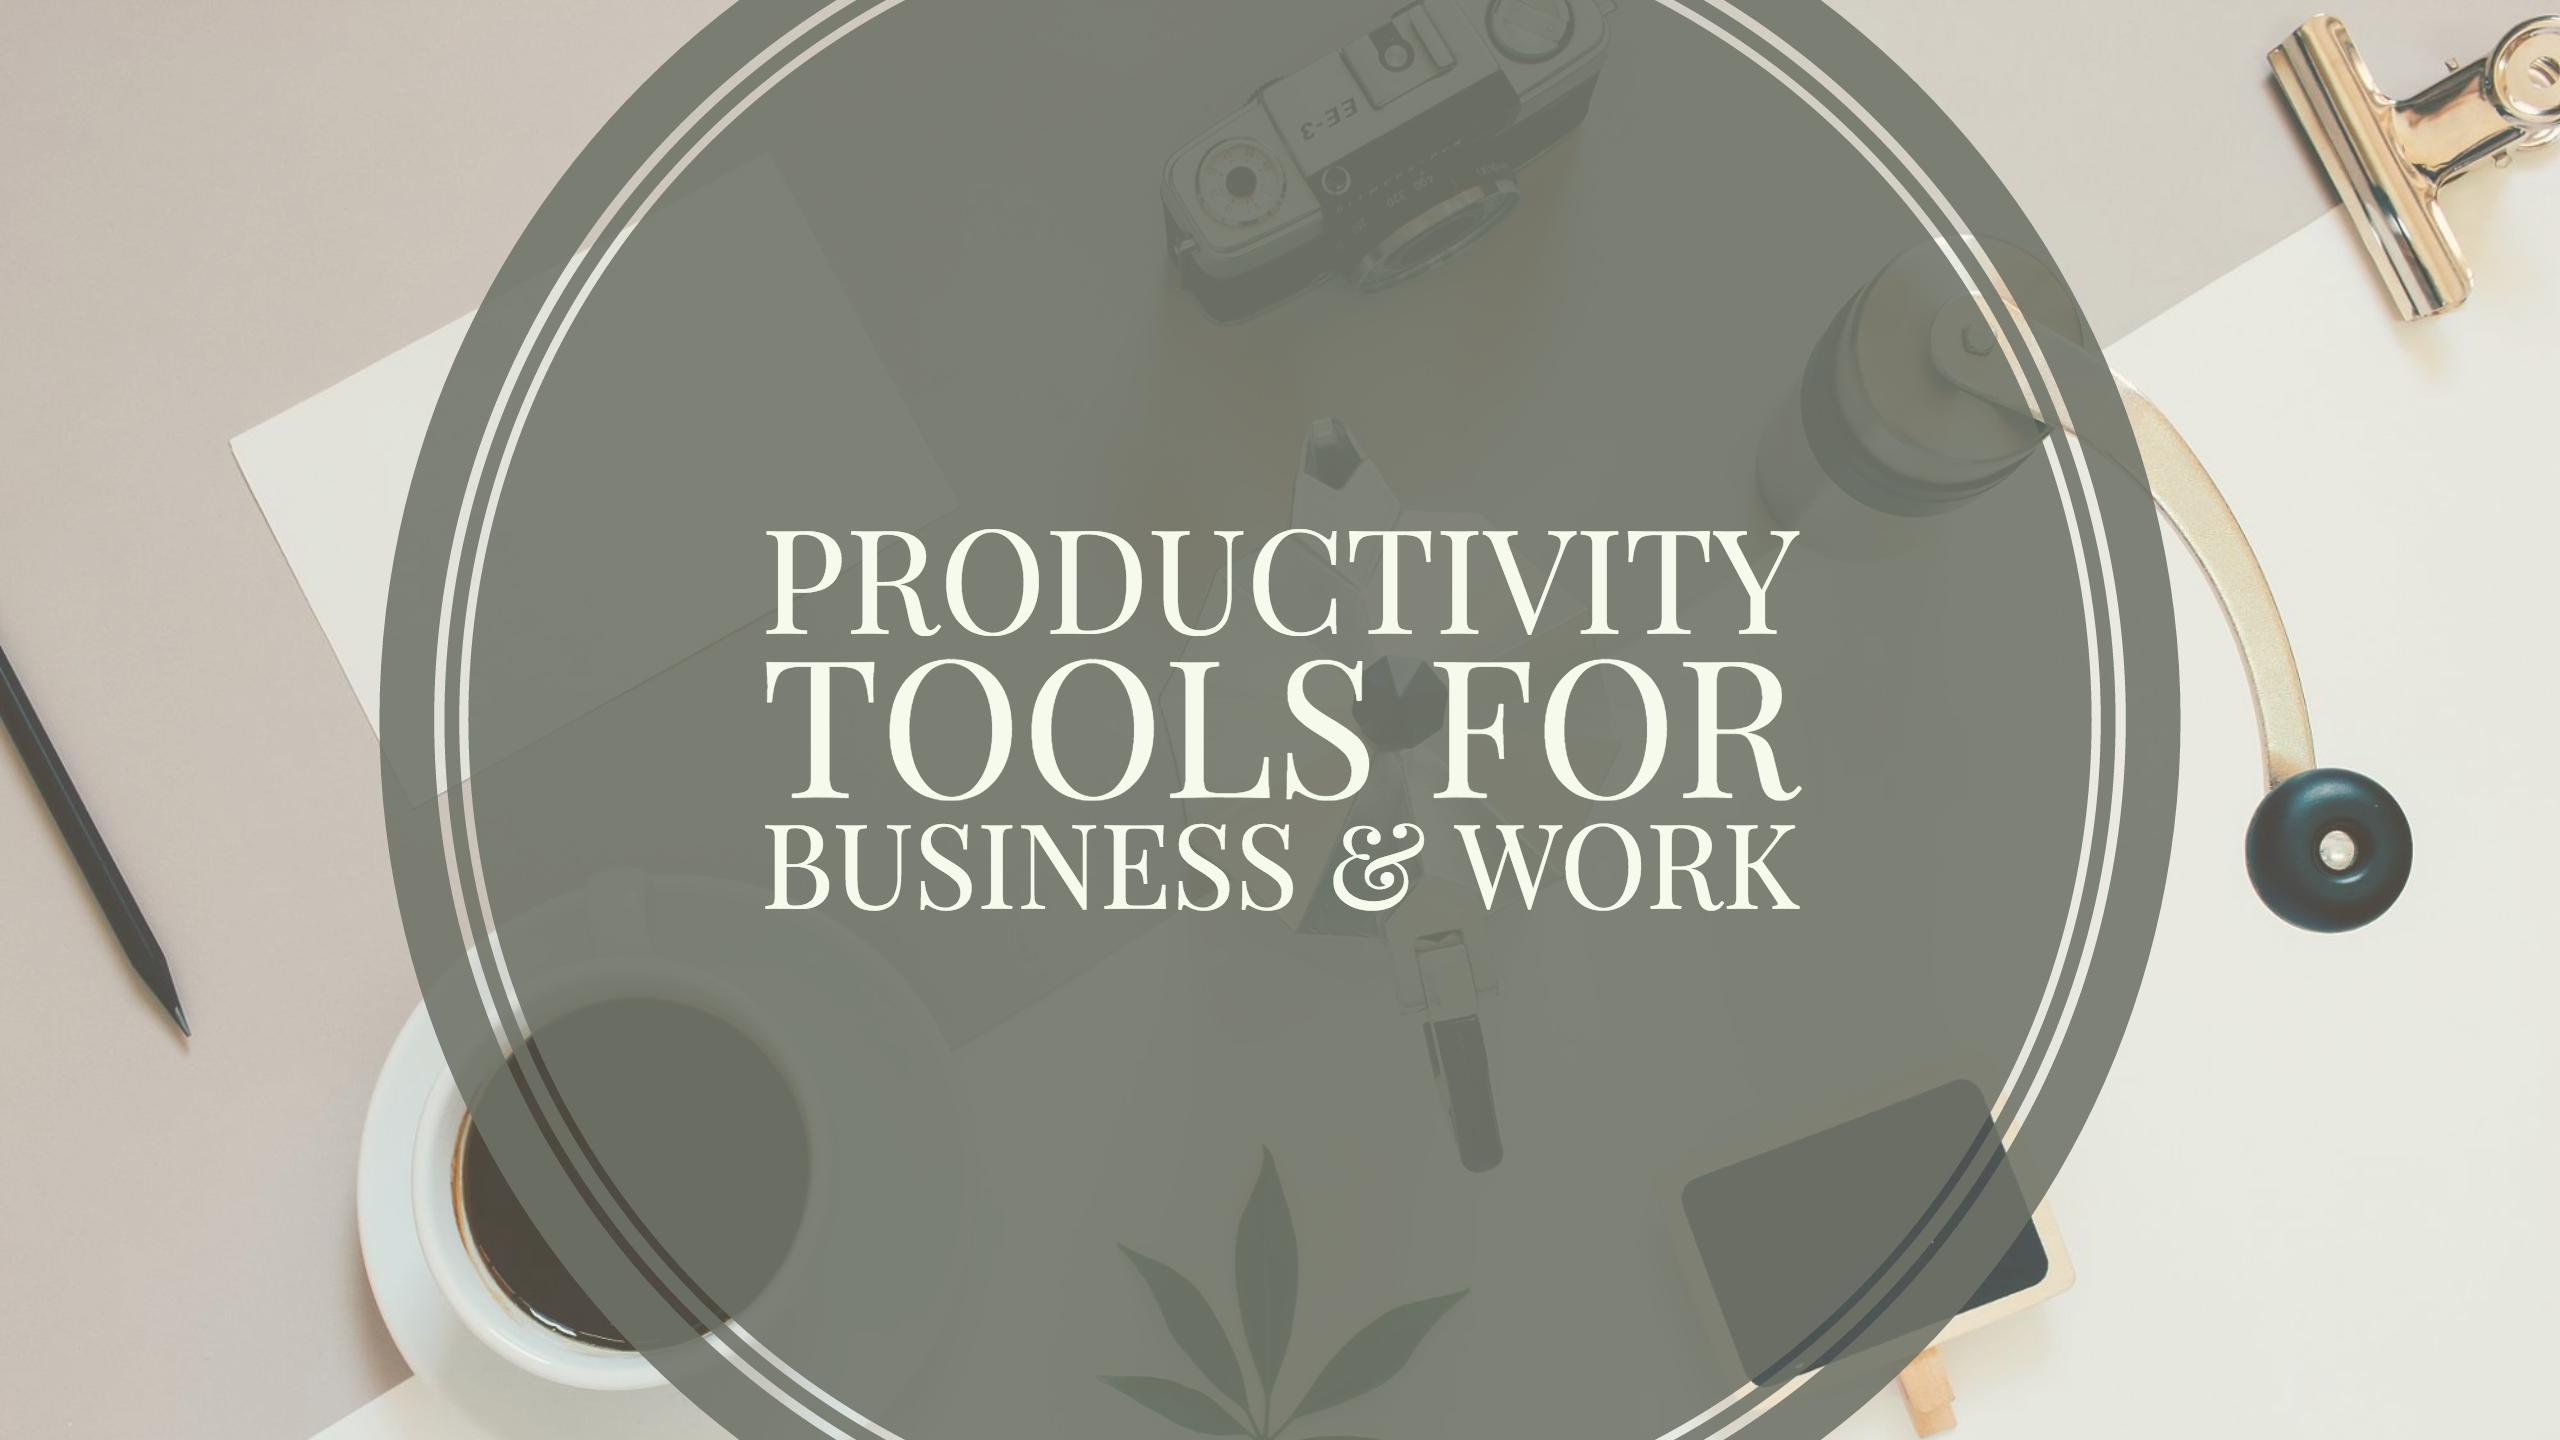 The 27 Best Productivity Tools for Business & Work - Colorlib